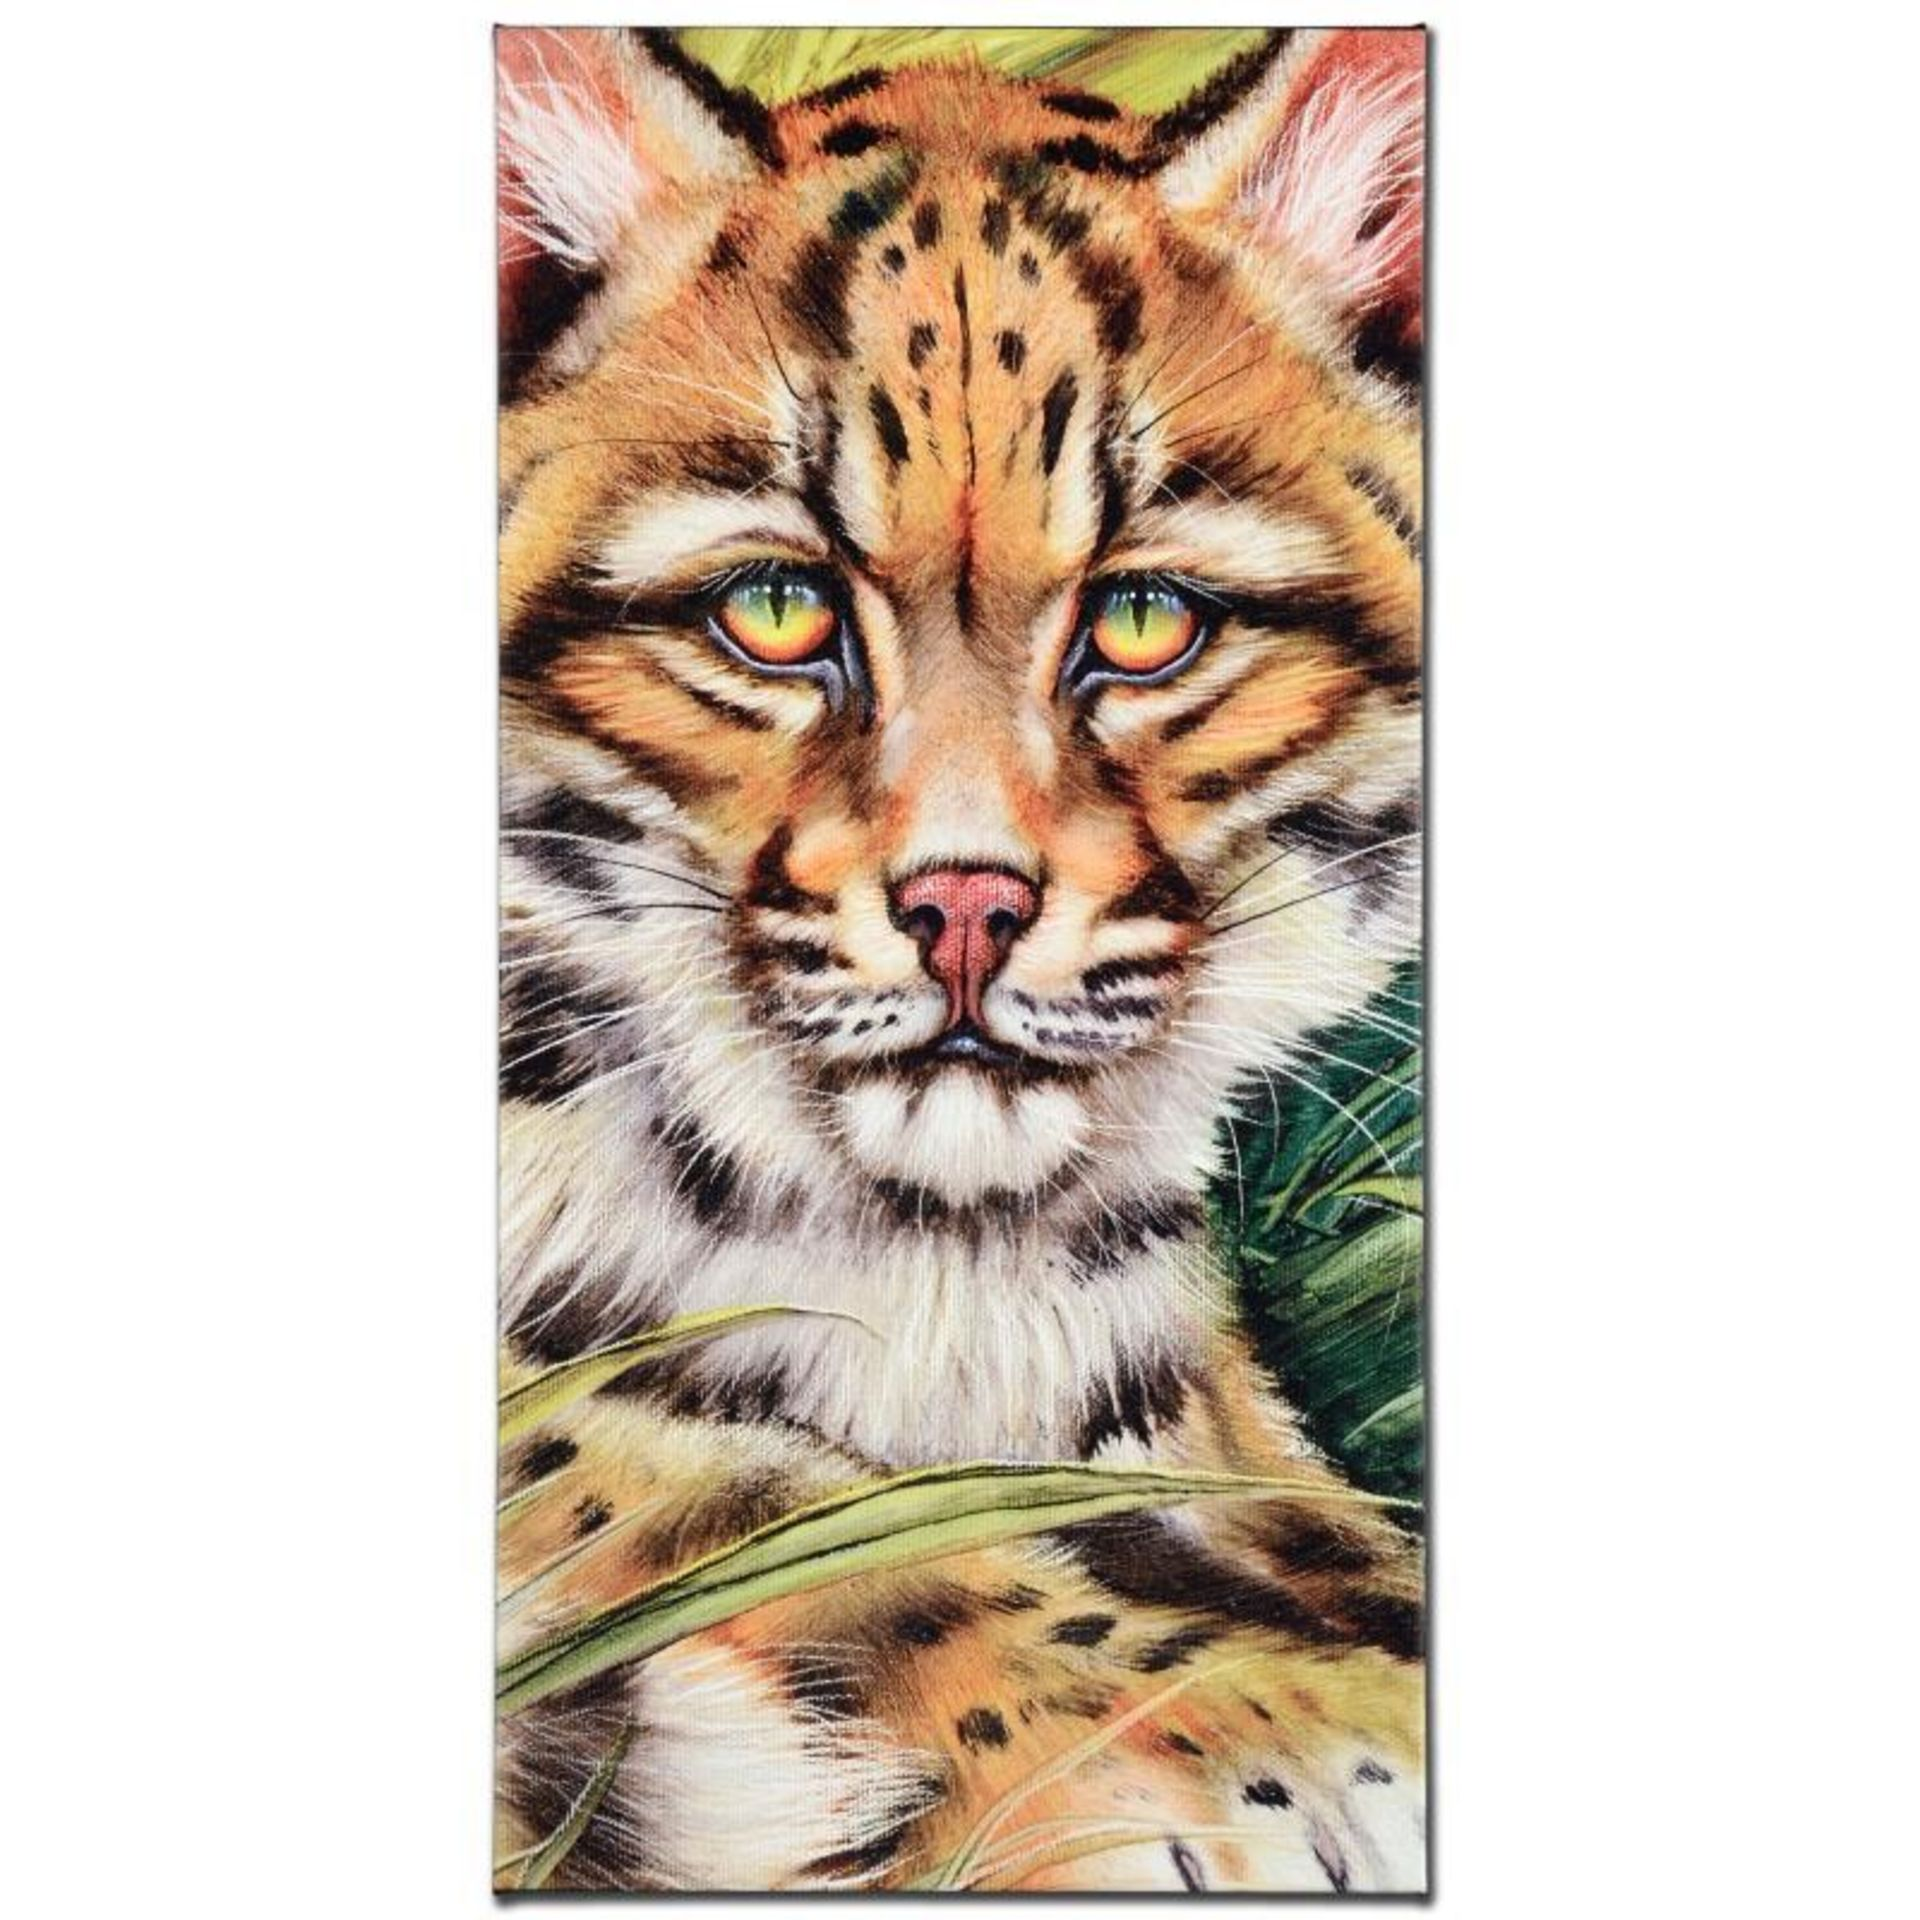 """Ocelot Eyes"" Limited Edition Giclee on Canvas by Martin Katon, Numbered and Han"